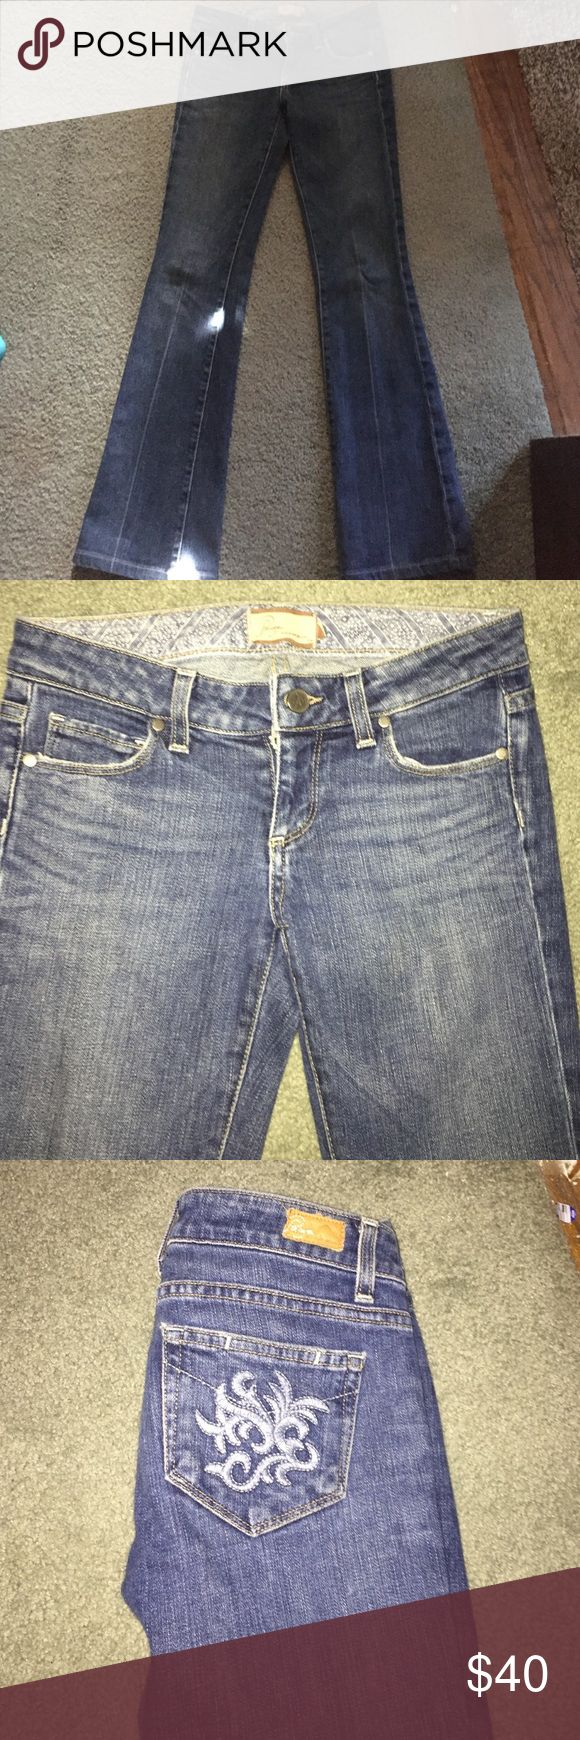 Used Paige Jean Used but in great condition. Stretch and boot cut. Back pockets have design on butt. Paige Jeans Jeans Boot Cut